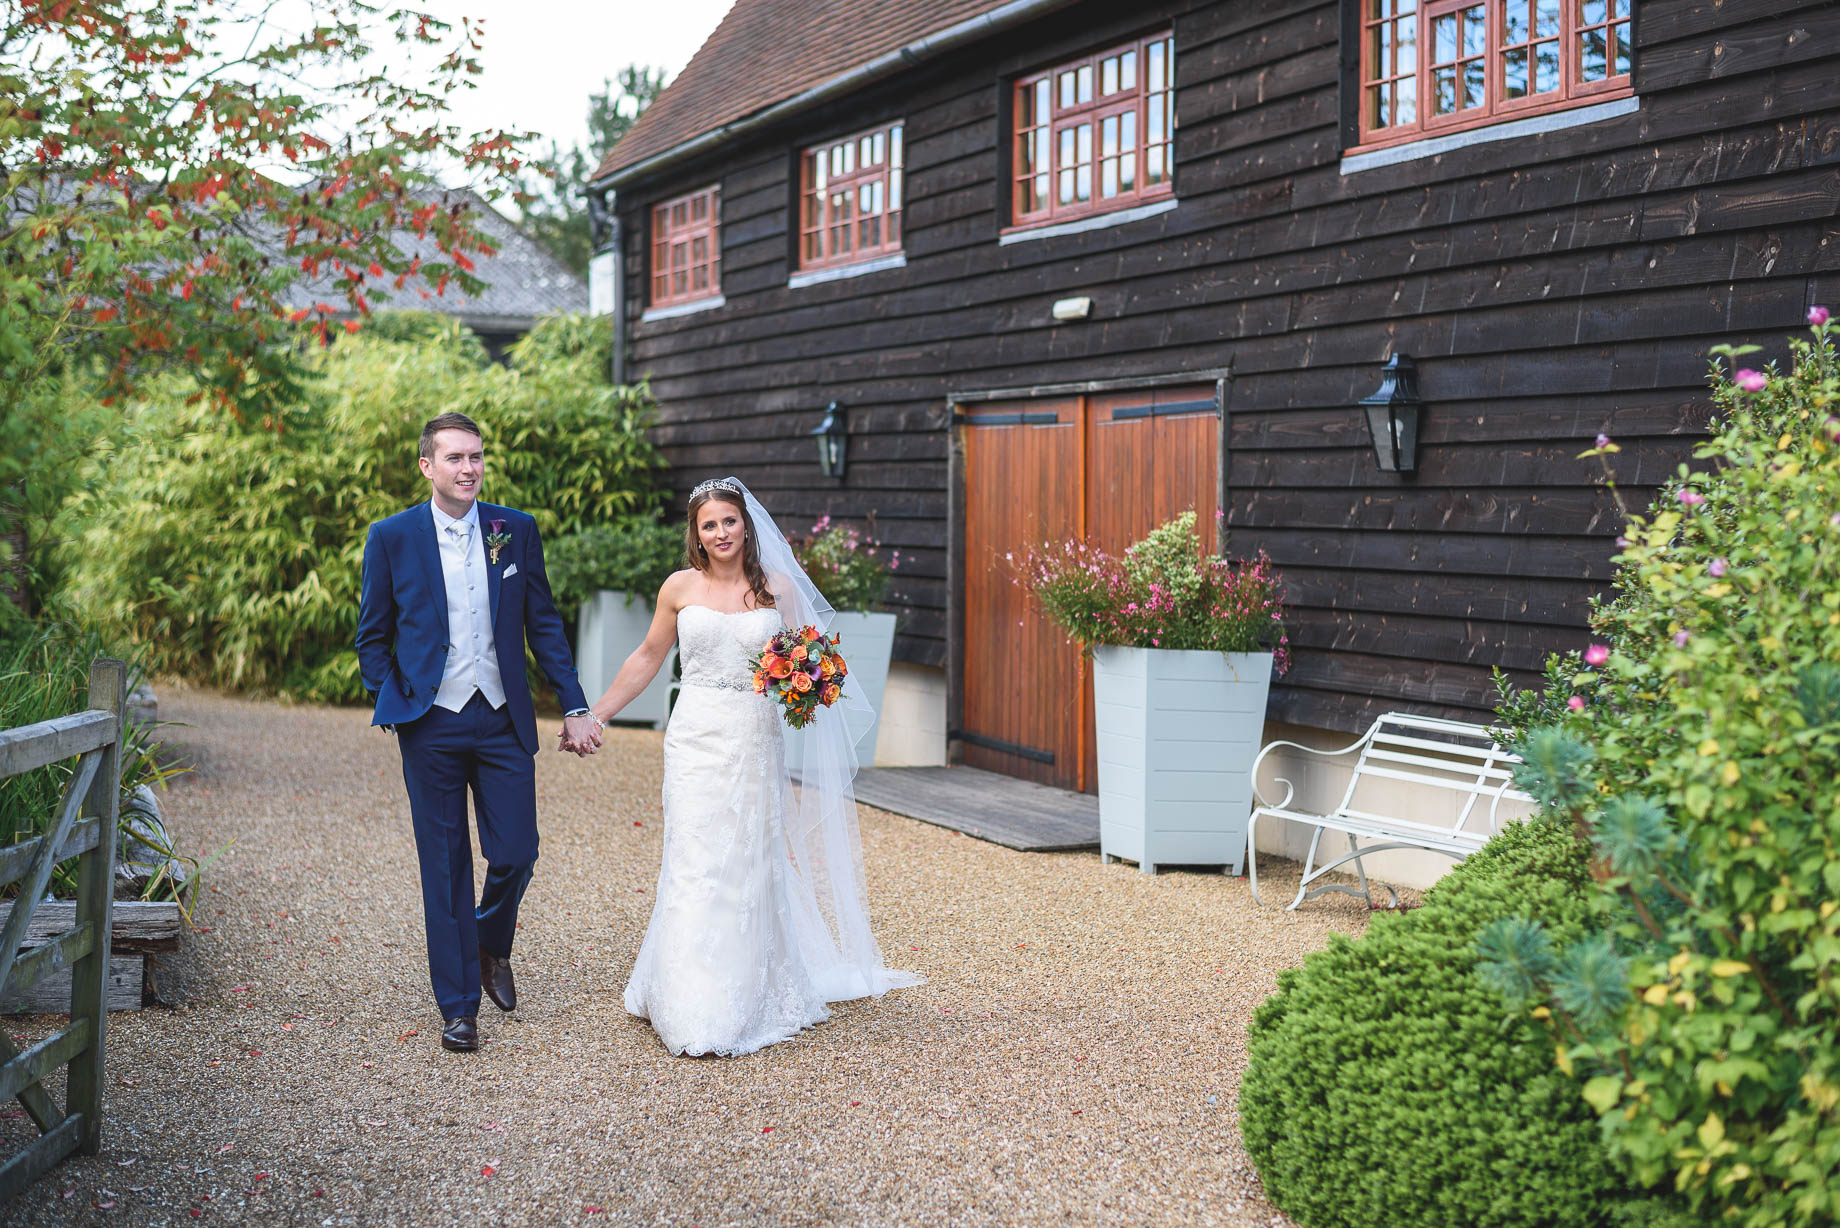 Gate Street Barn wedding photography - Guy Collier - Claire and Andy (69 of 192)